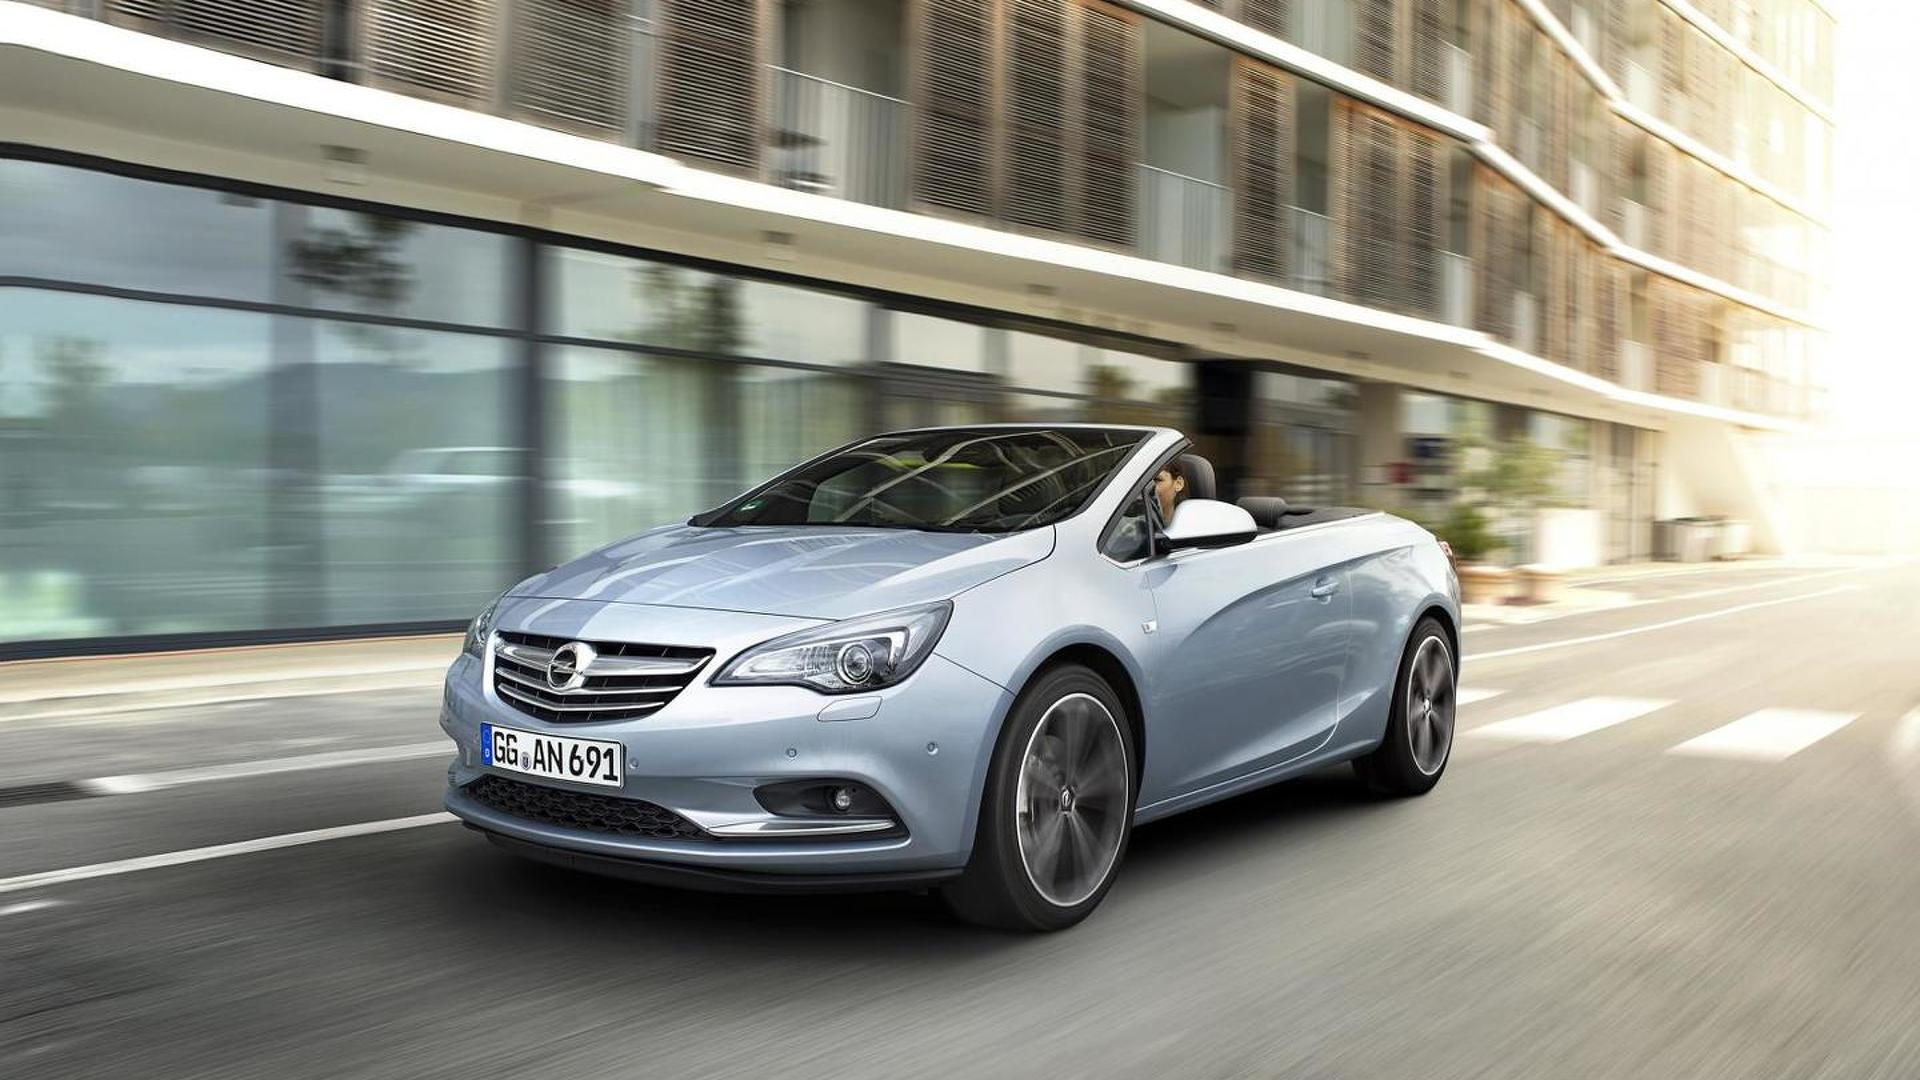 Opel Cascada receives new 2.0-liter diesel engine with 170 PS